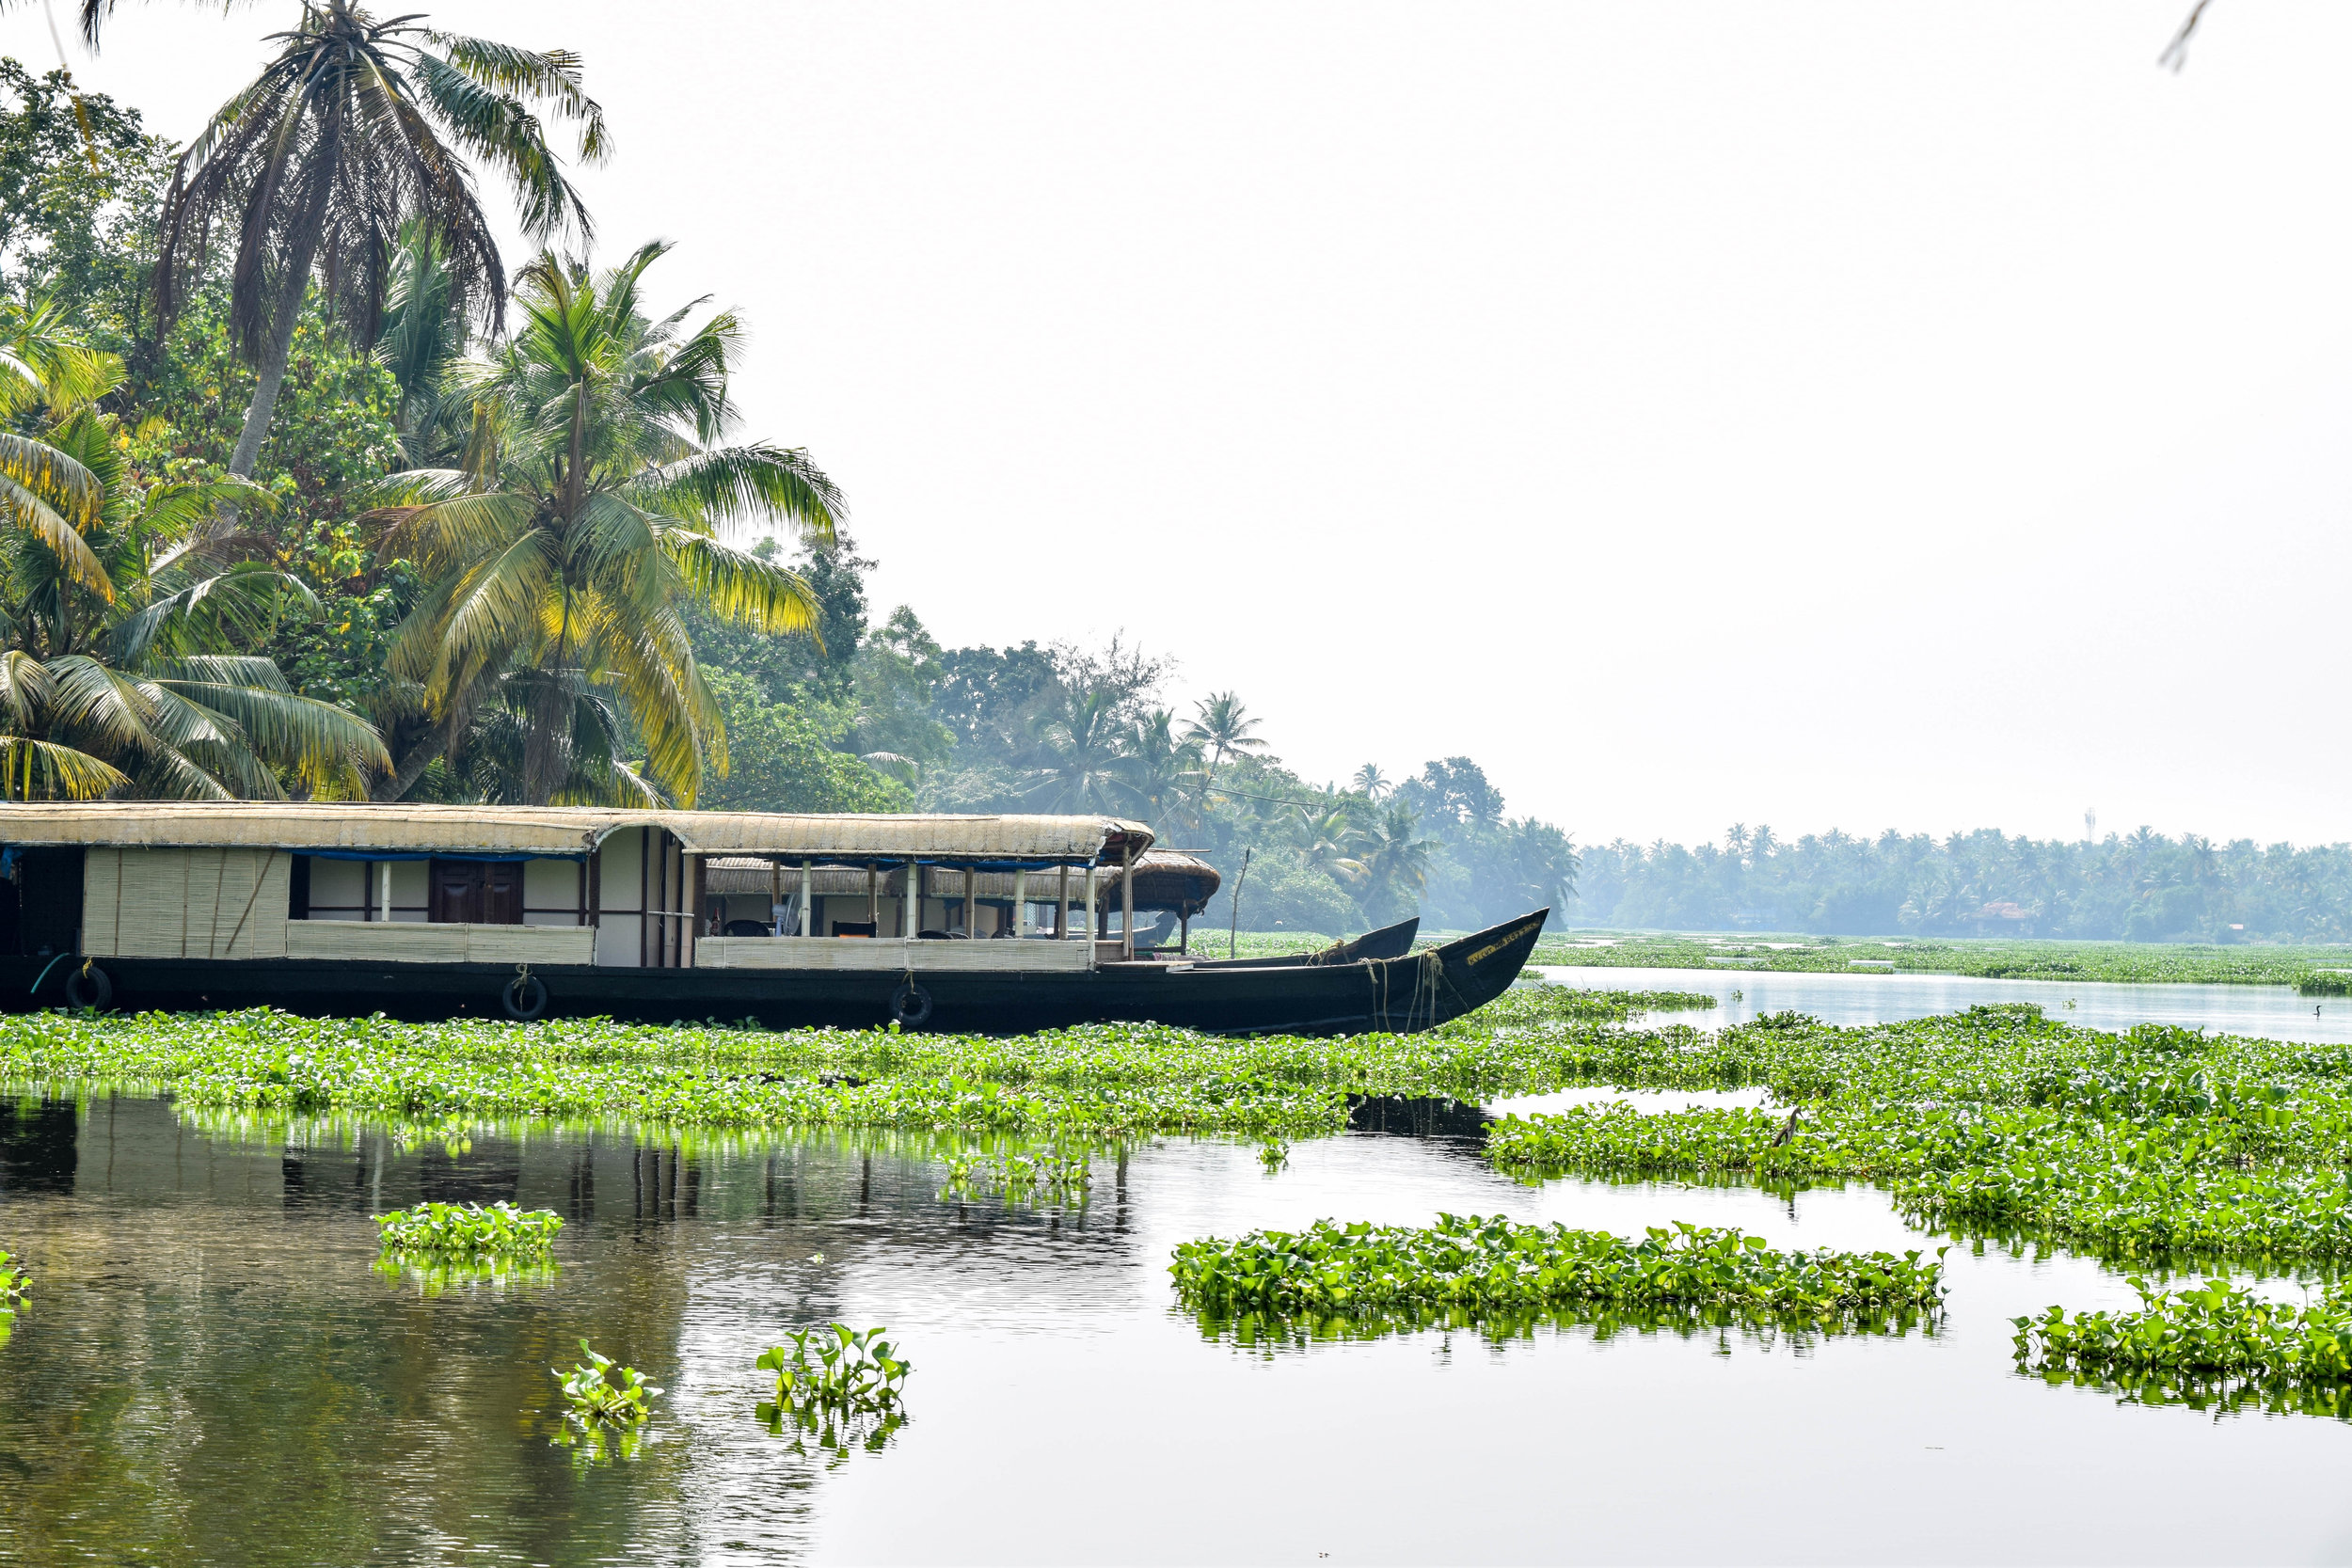 Our humble houseboat.